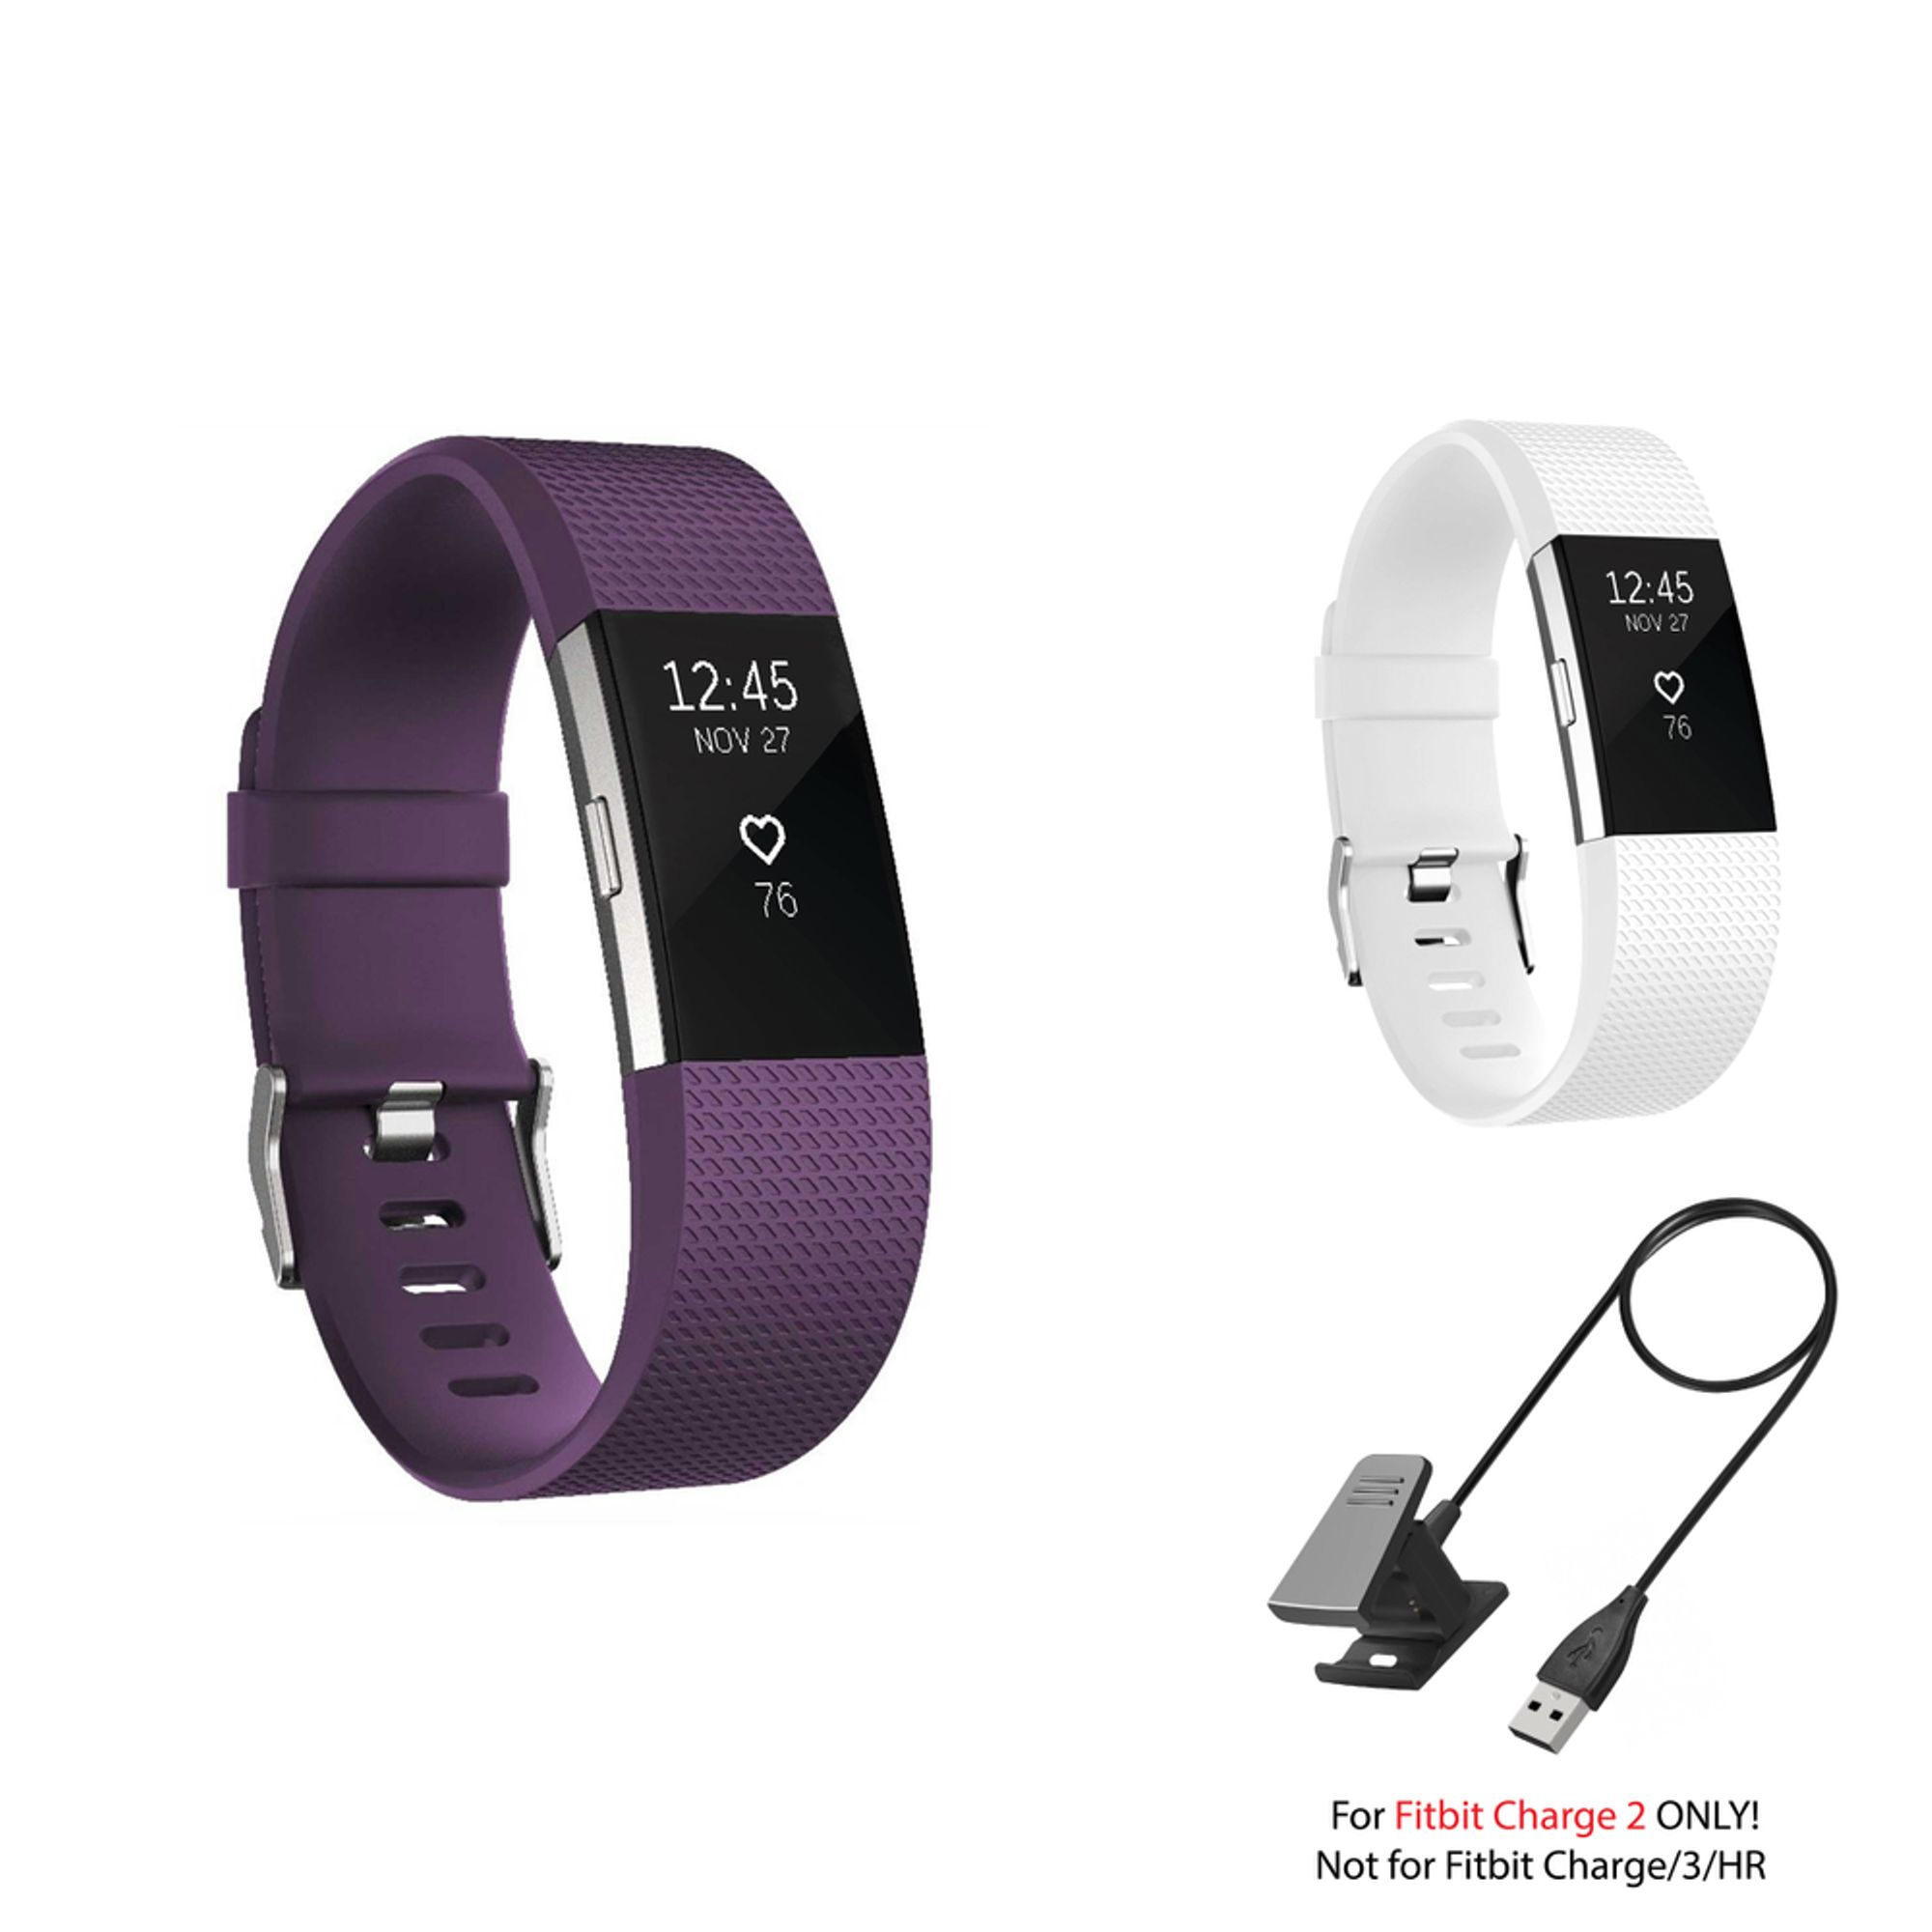 Fitbit Charge 2 Bands and Fitbit Charge 2 Charger by Zodaca 2 pack (Purple & White) Replacement Bands Rubber Wristband Fashion Sport Strap with Metal Buckle and USB Charging Cable for Fitbit Charge 2